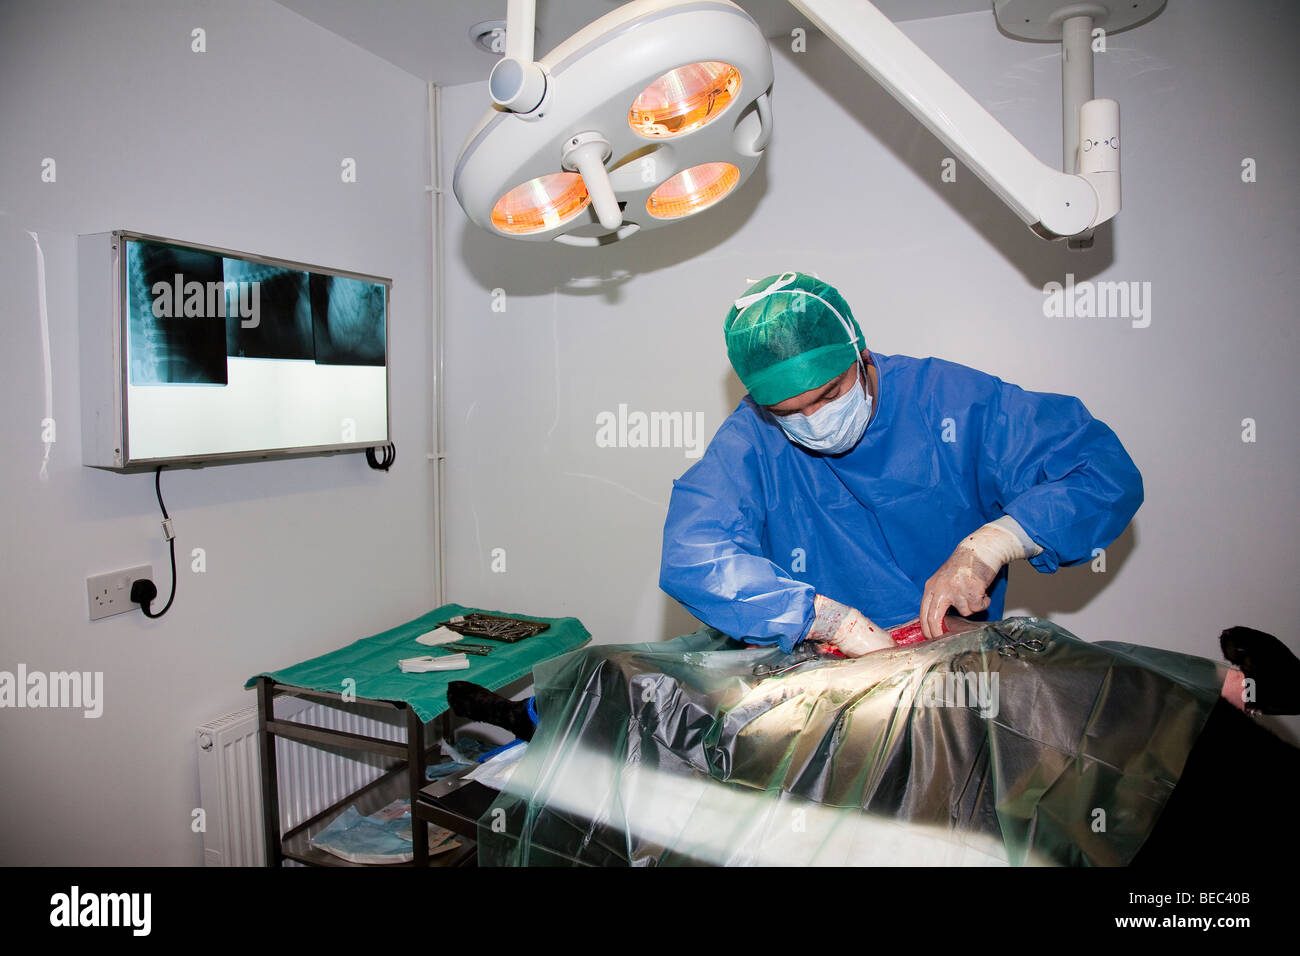 Veterinary Surgeon Operating on a Dog in Theatre Stock Photo